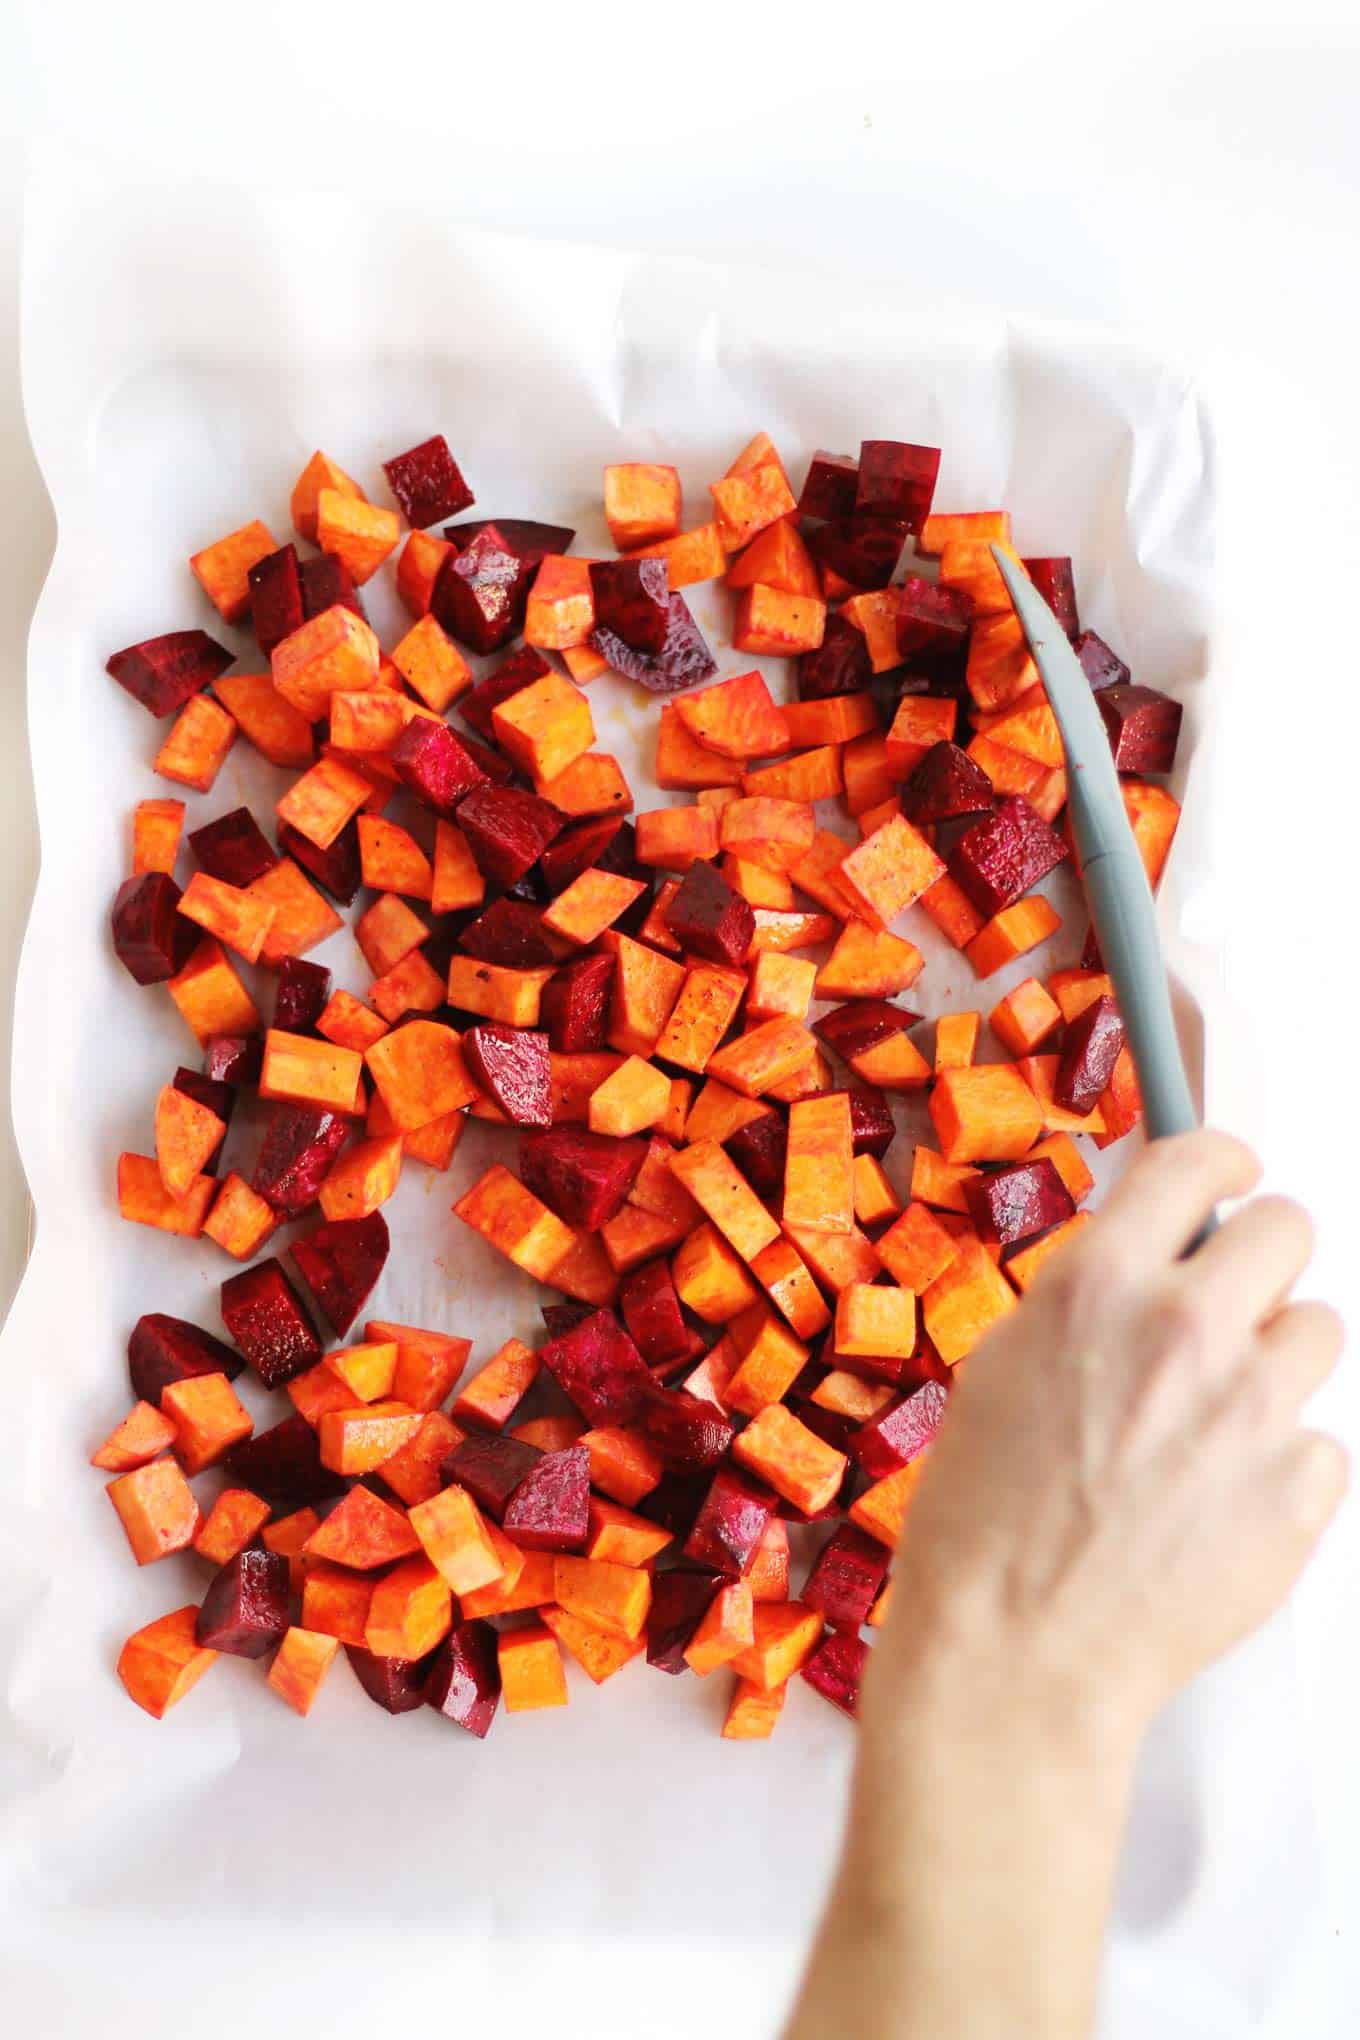 Sweet potatoes and beets on a baking pan